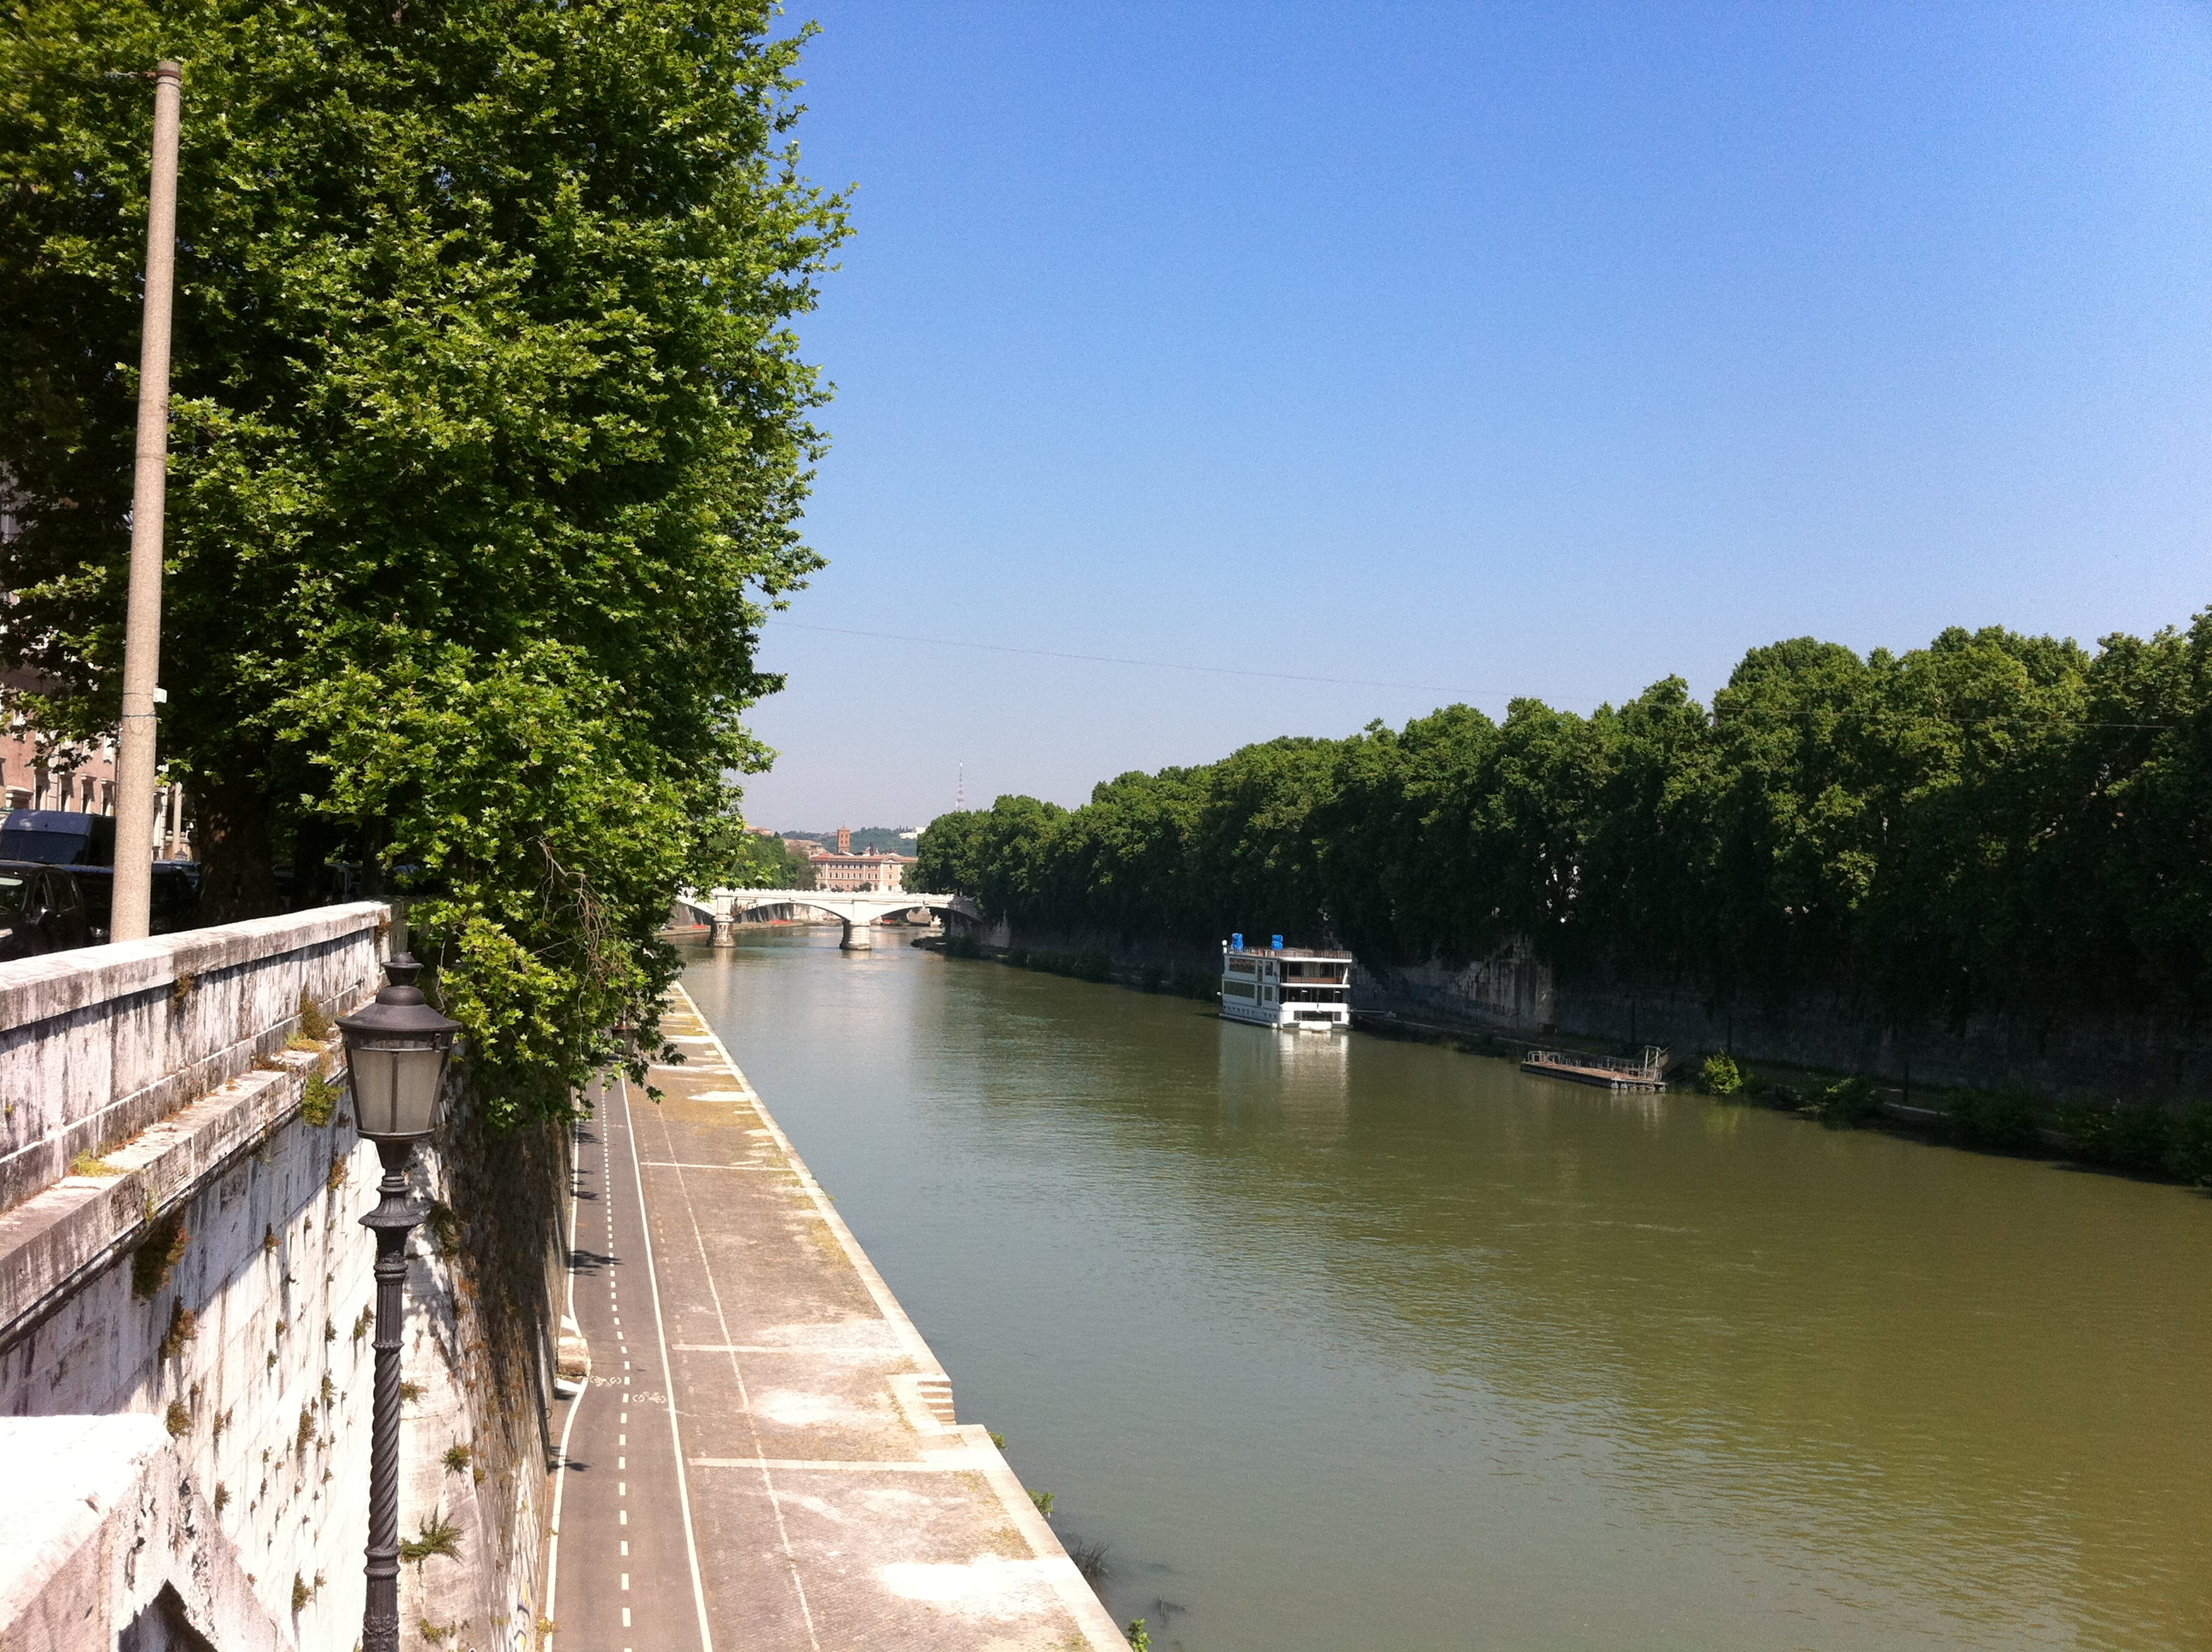 Tiber River from Sisto Bridge